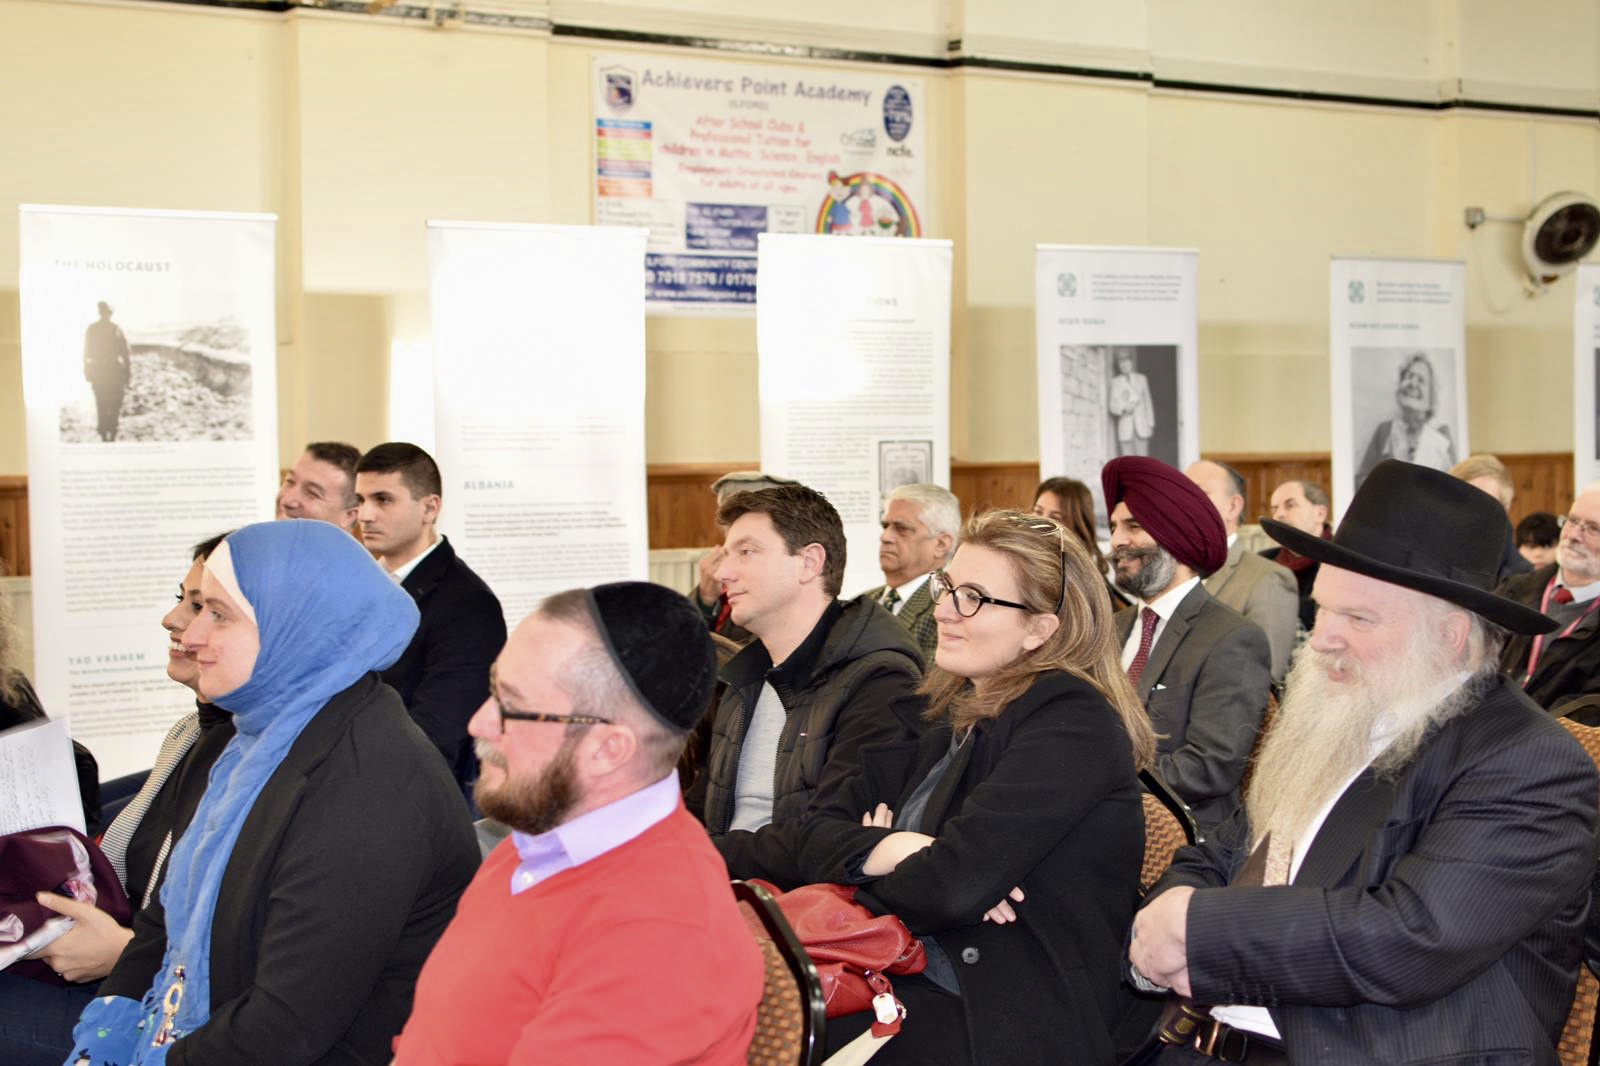 Holocaust remembrance event held in a local Mosque commemorating Albanian Muslims rescuing Jews from Nazis portrayed in an exhibition called Besa - Code of Honour.